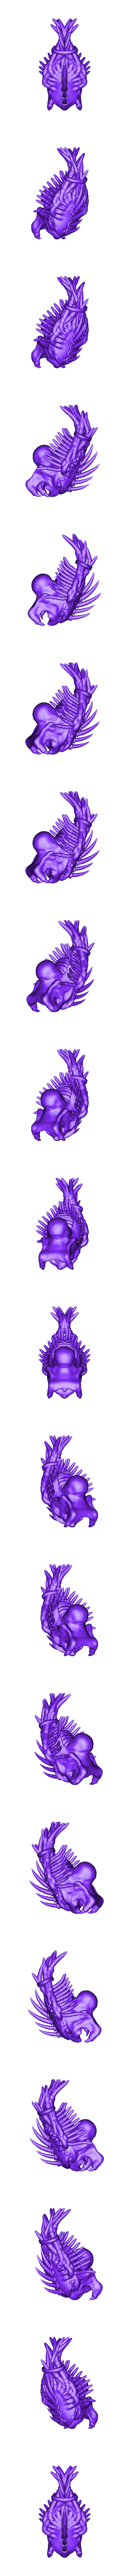 10-UMF-00101.stl Download free STL file Ugly Mother Flockers -or- Heads for Cannibal Chickens who joined a Cult and love 80's action movies. • 3D printing model, FelixTheCrazy